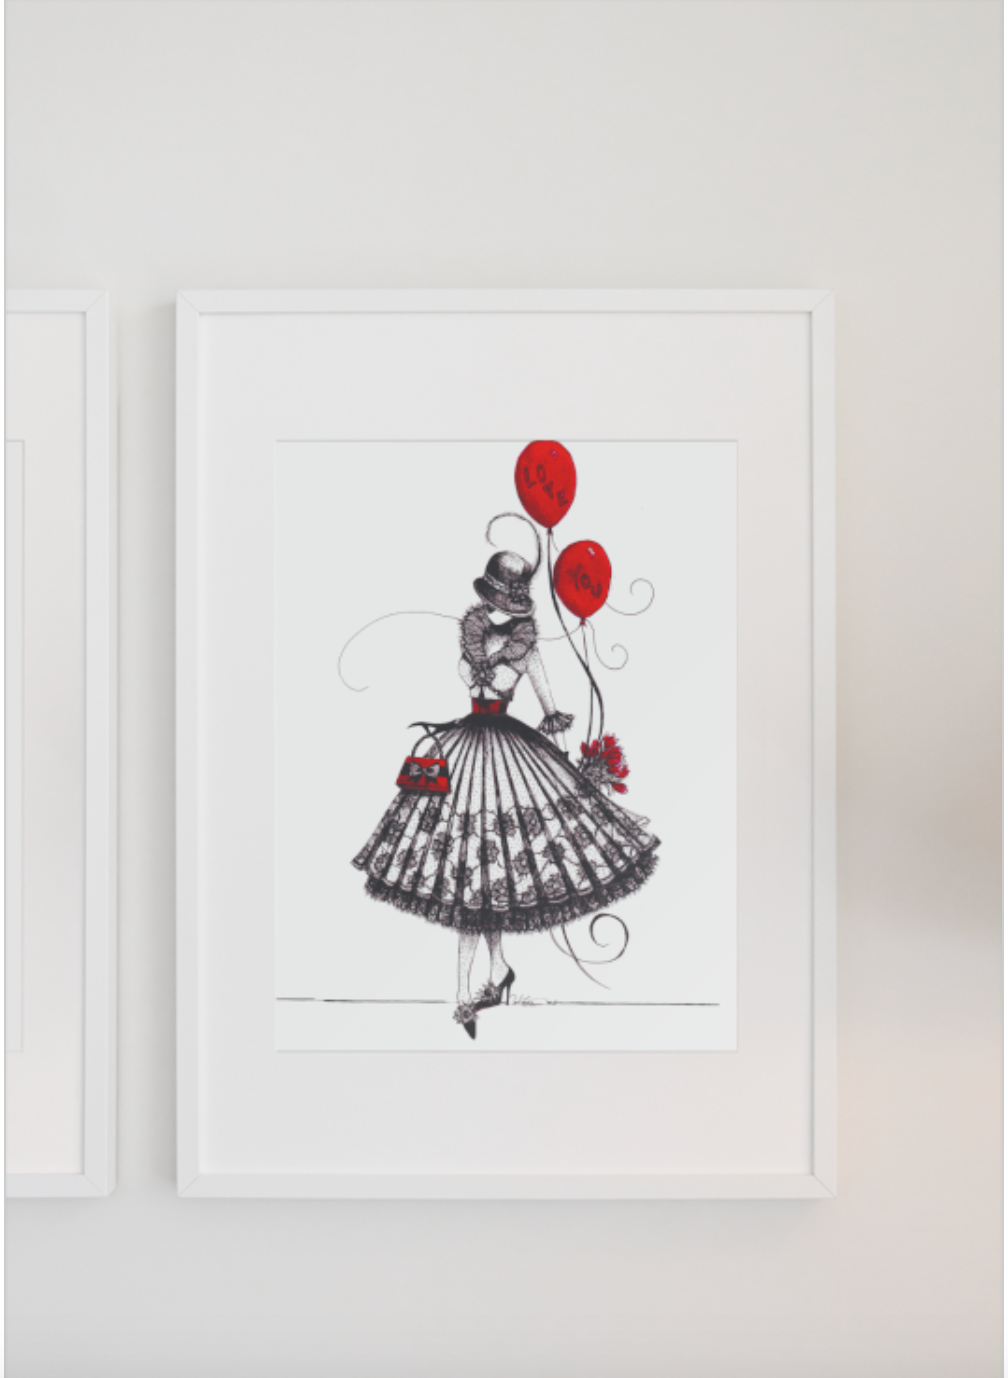 Fancy dressed lady. Wall art for interior room decor